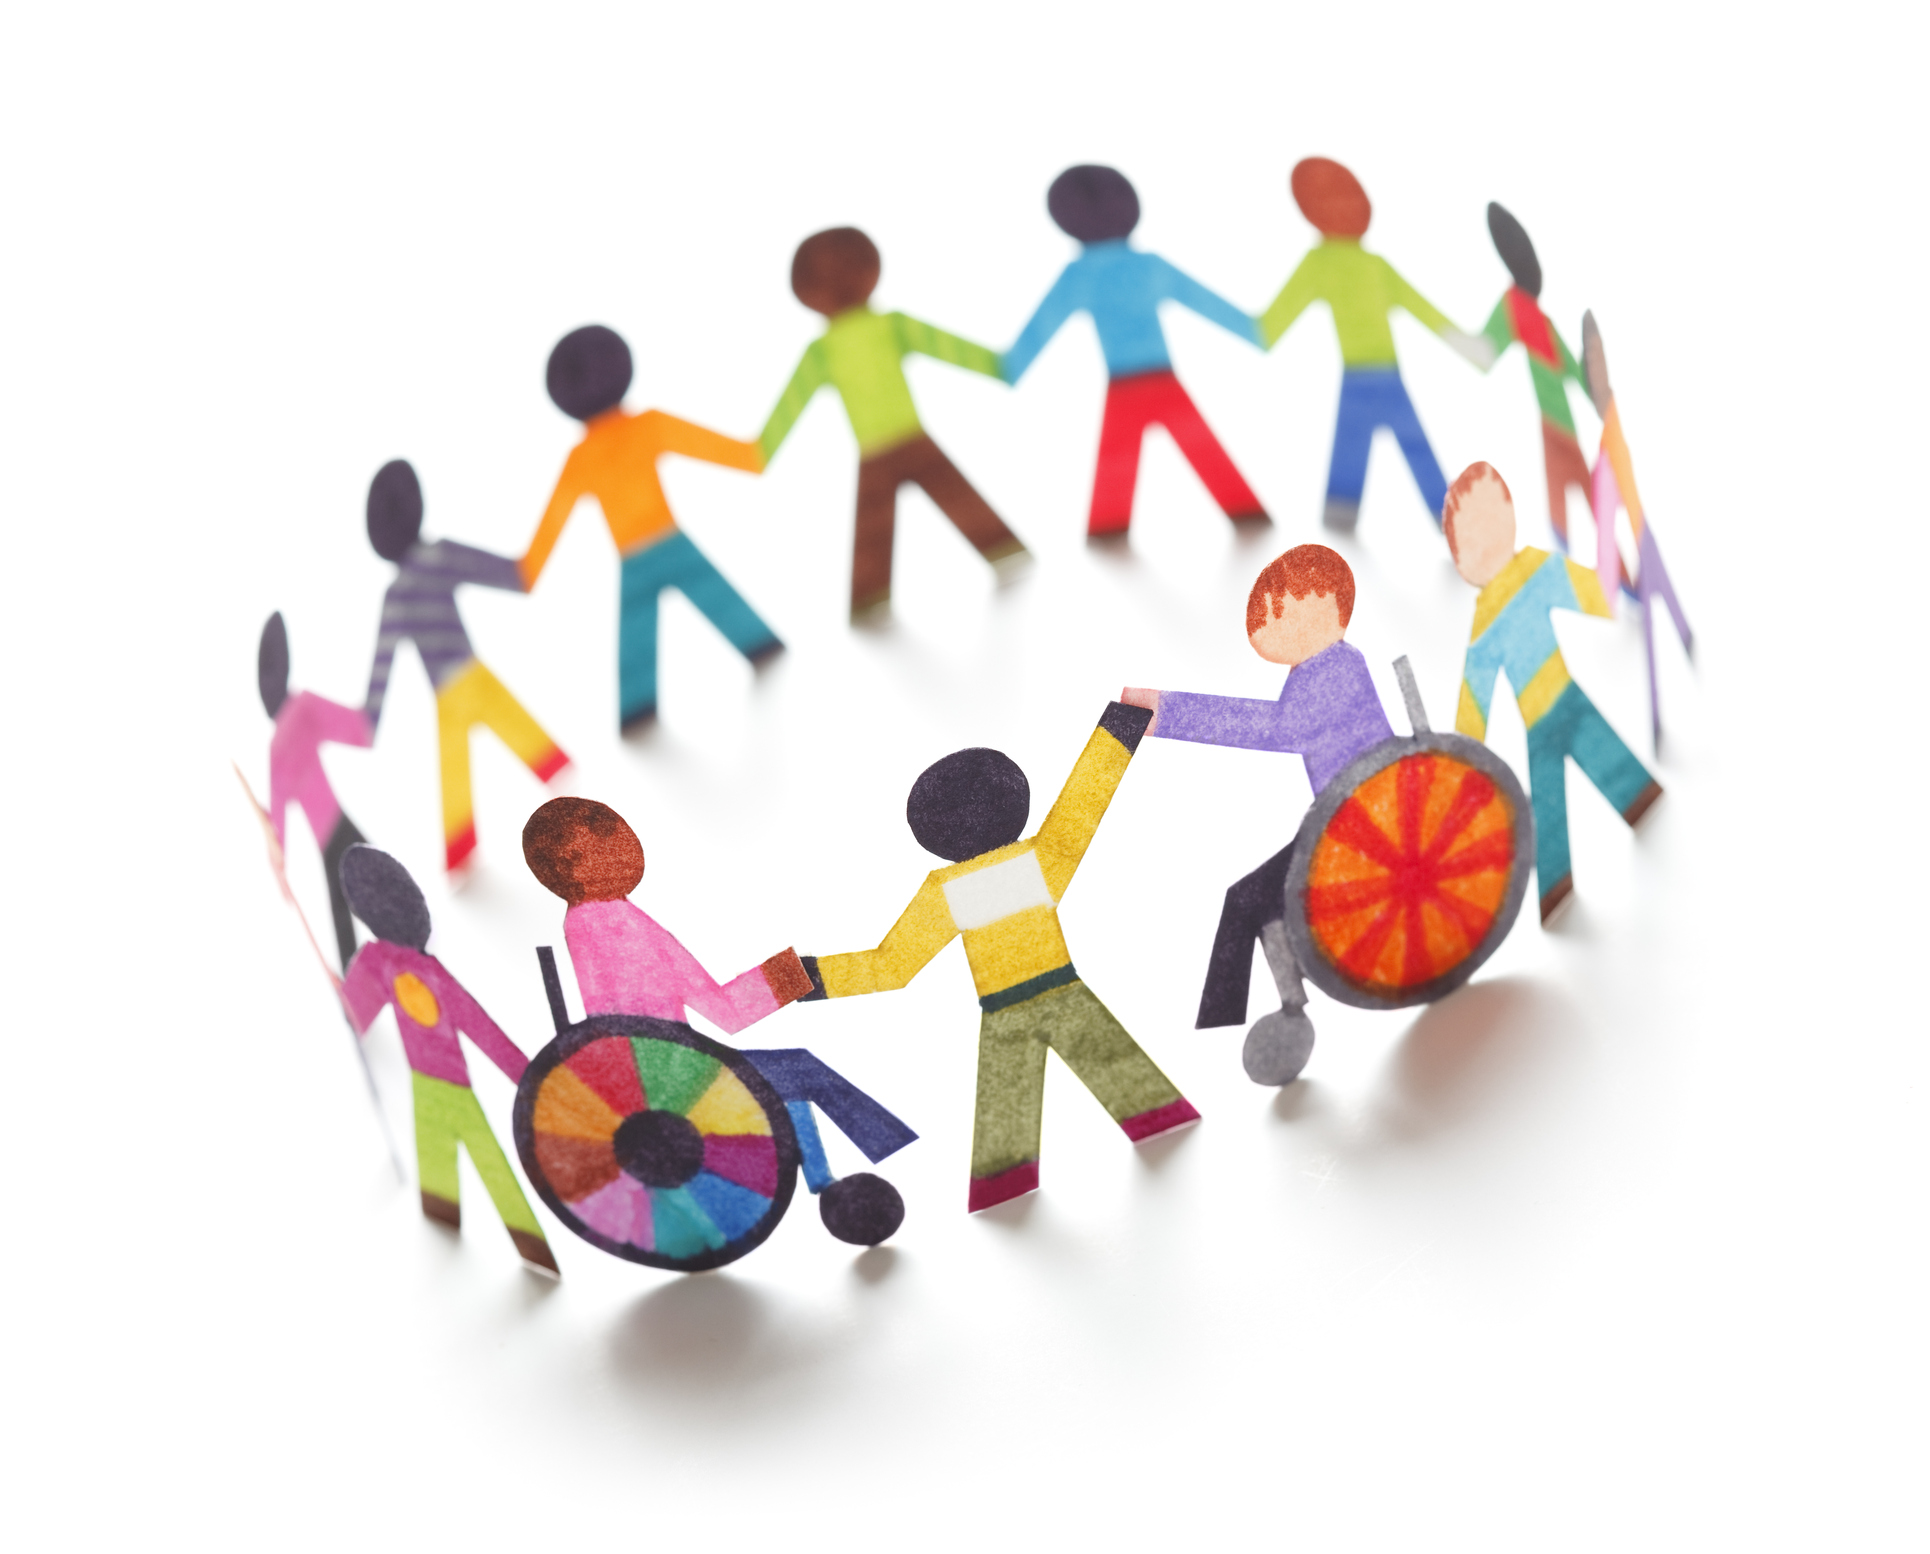 National Organizations Band Together for Inclusion—Will You Join Them?